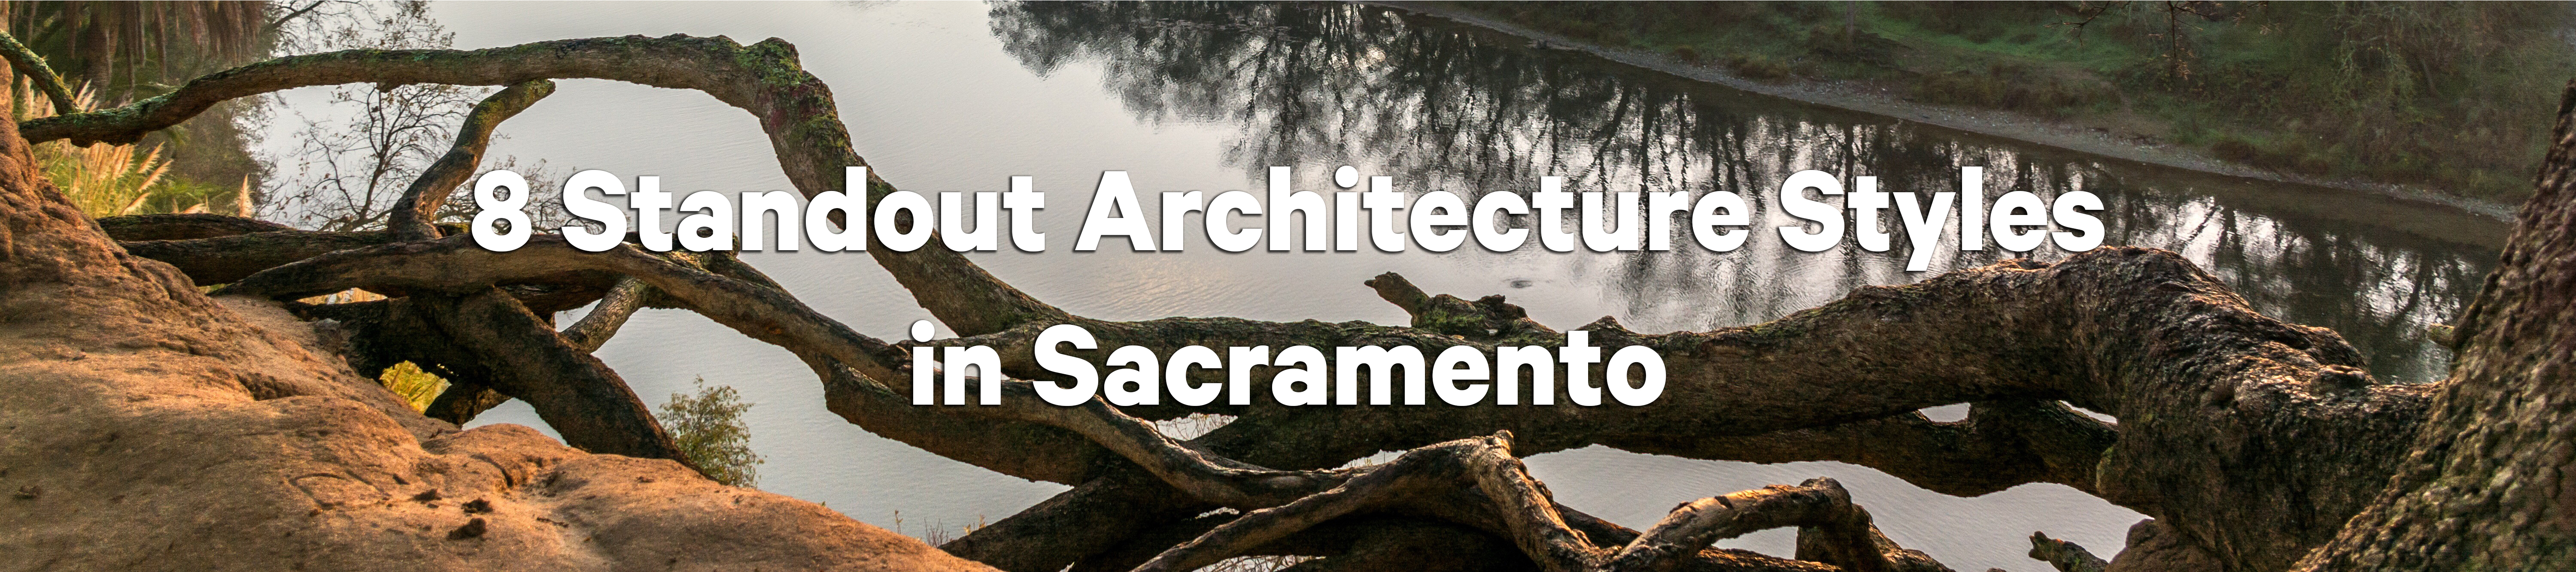 Read our details about Sacramento to see if it's right for you in real estate.